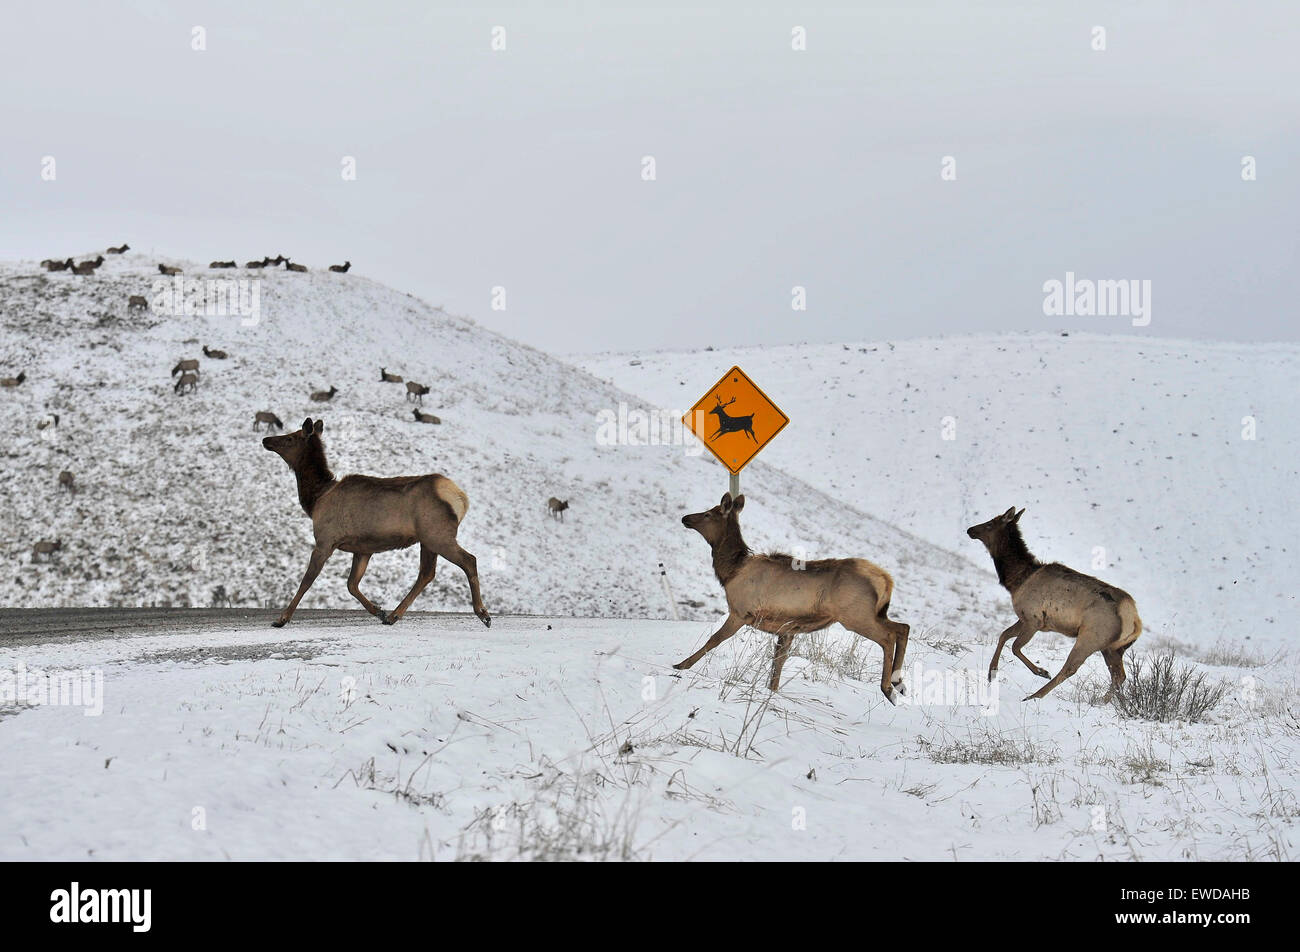 A herd of elk crossing the road at the animal crossing sign - Stock Image